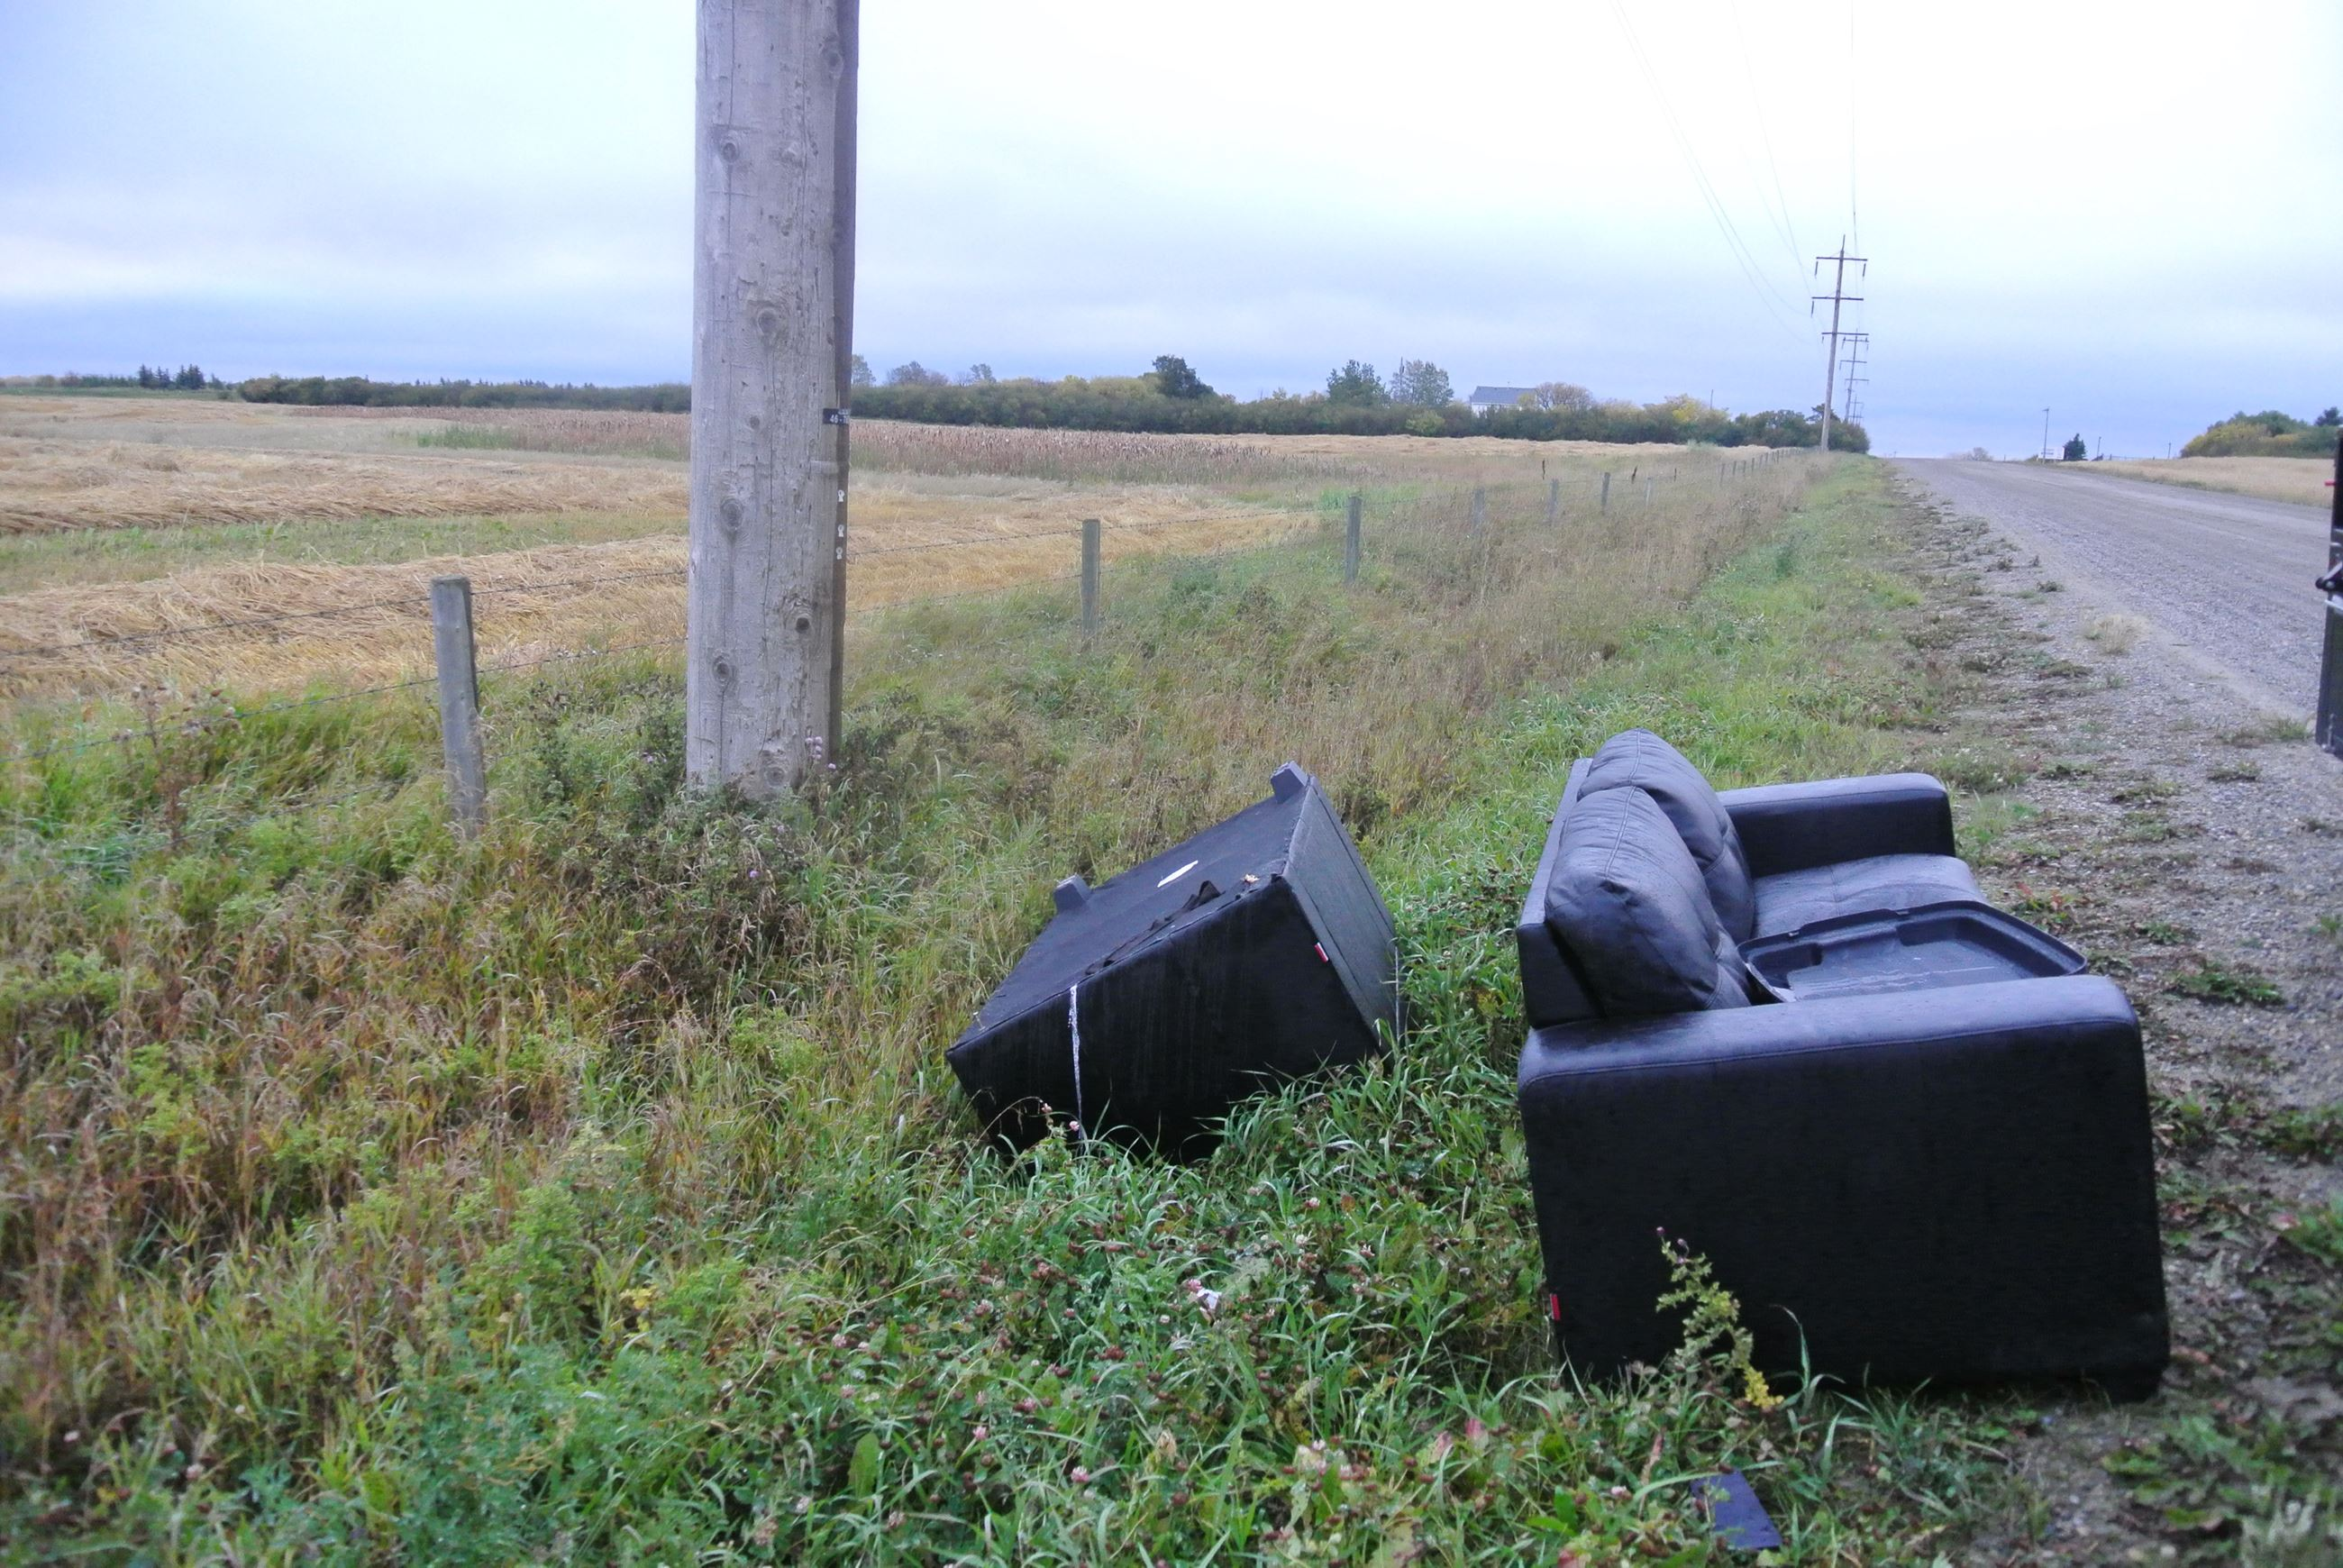 Couches dumped on side of road